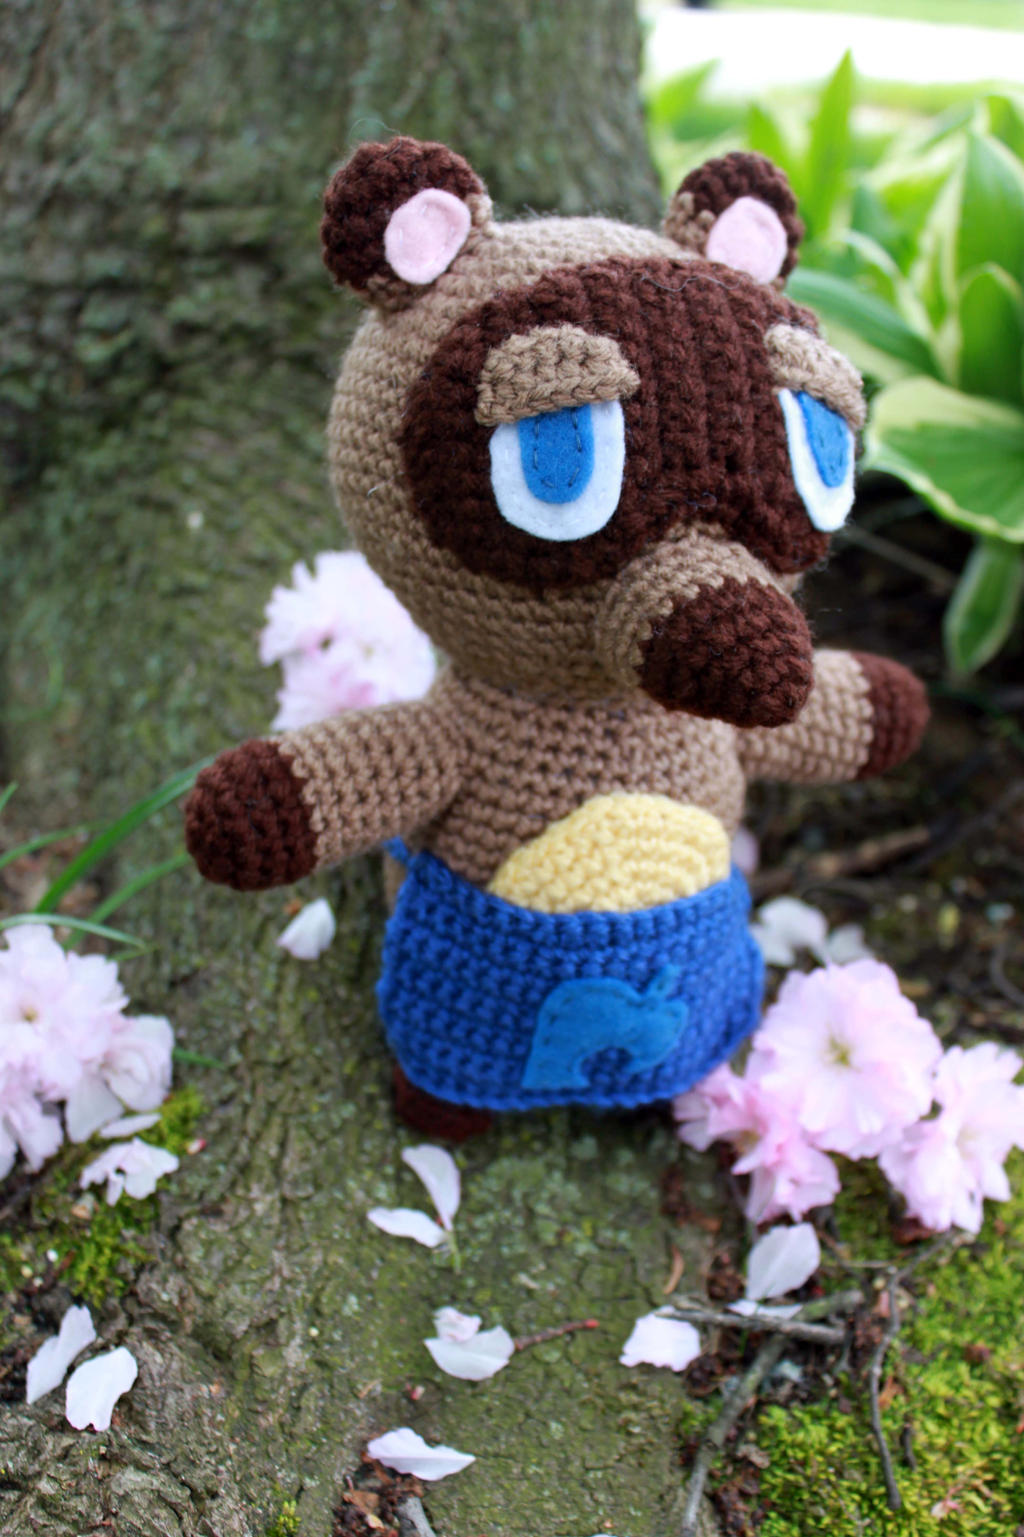 Mr. Nook by bandotaku